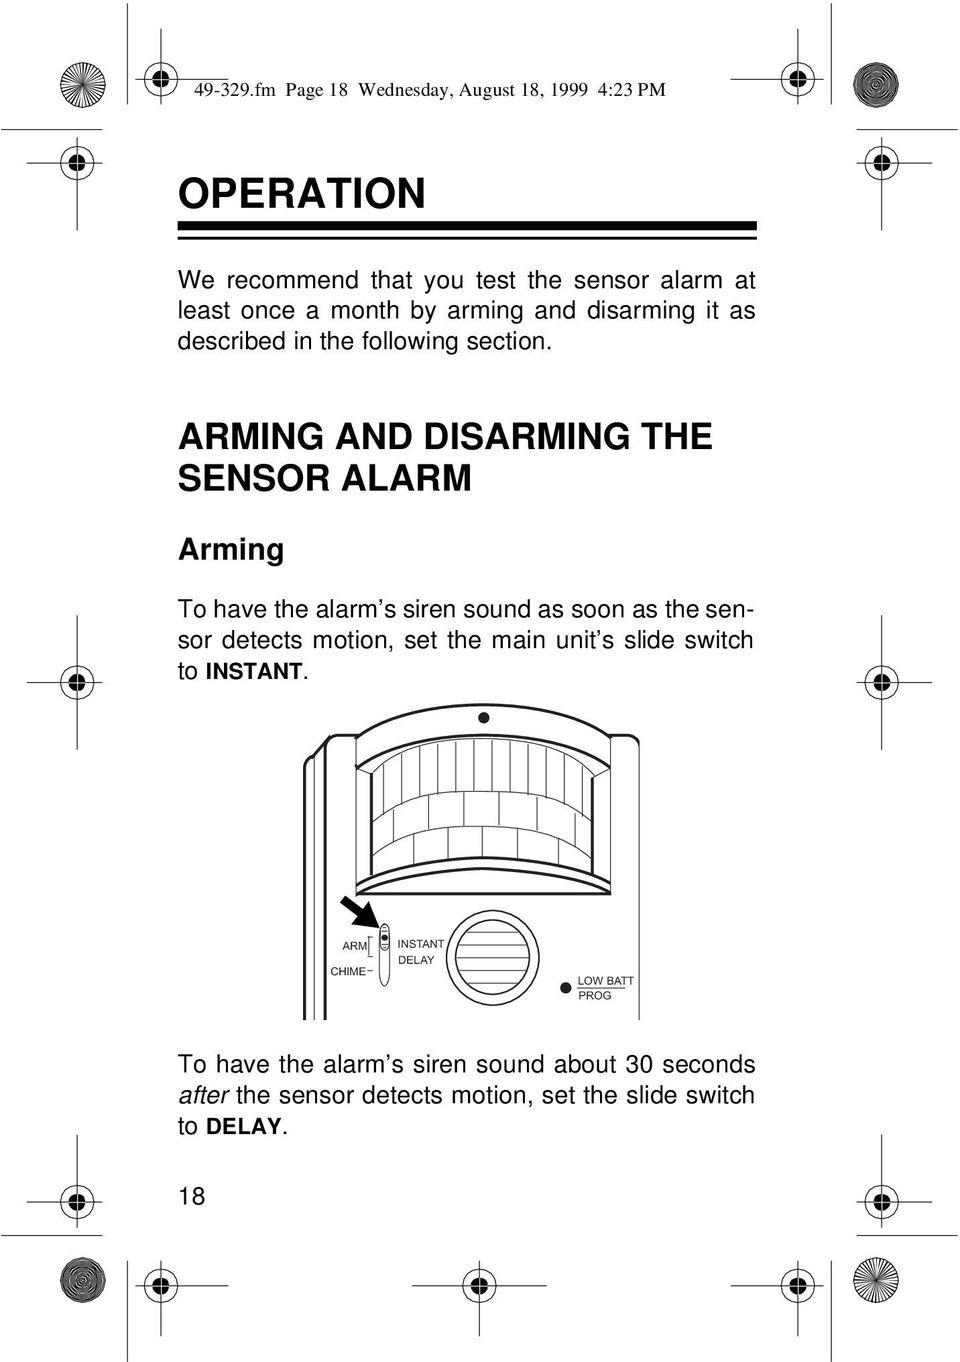 arming and disarming it as described in the following section.